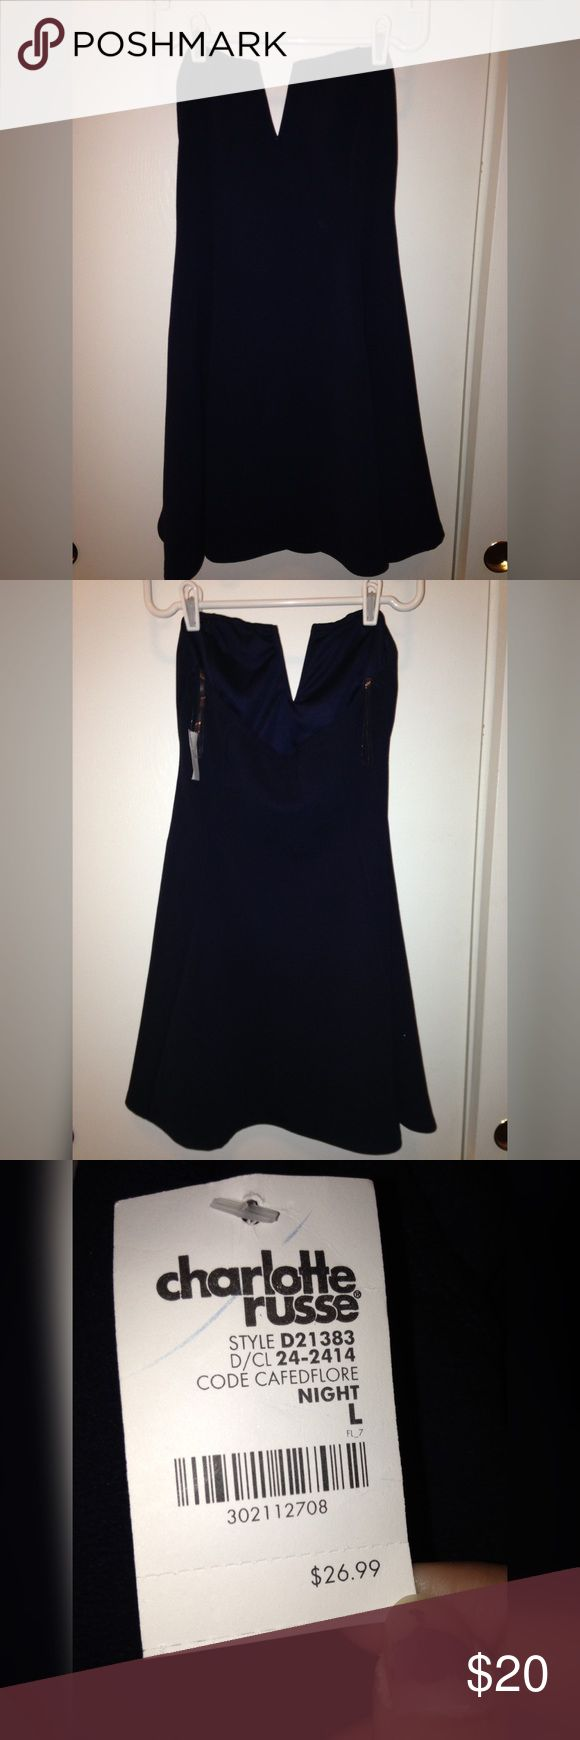 NWT Navy Blue Strapless Party Dress This cute dress is perfect for a nice night out! It starts out slightly fitted at the top then flares out. Feel free to make an offer, I'm open to any and all. Charlotte Russe Dresses Strapless